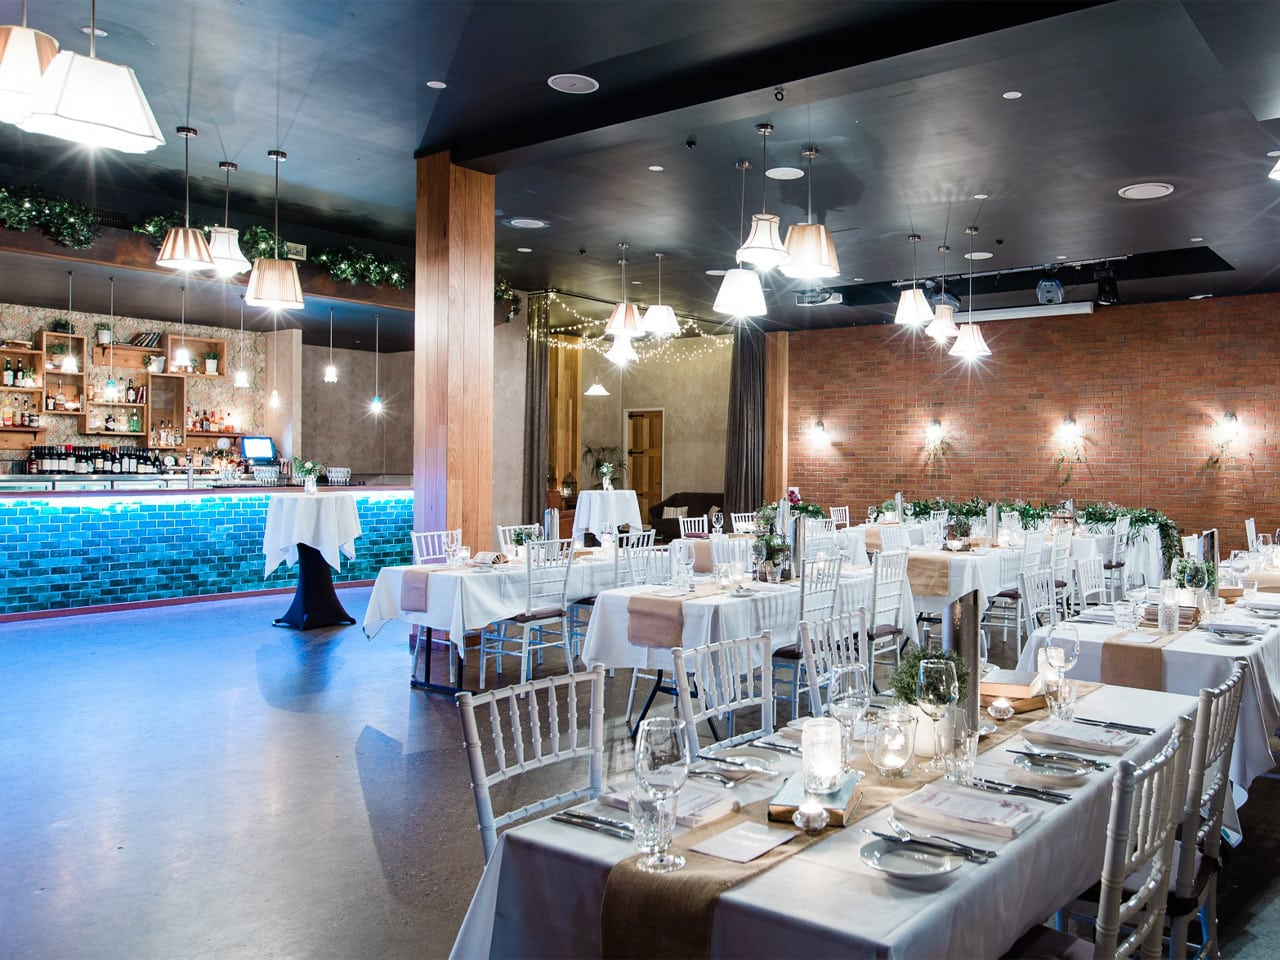 The Gallery set up for wedding with long white tables